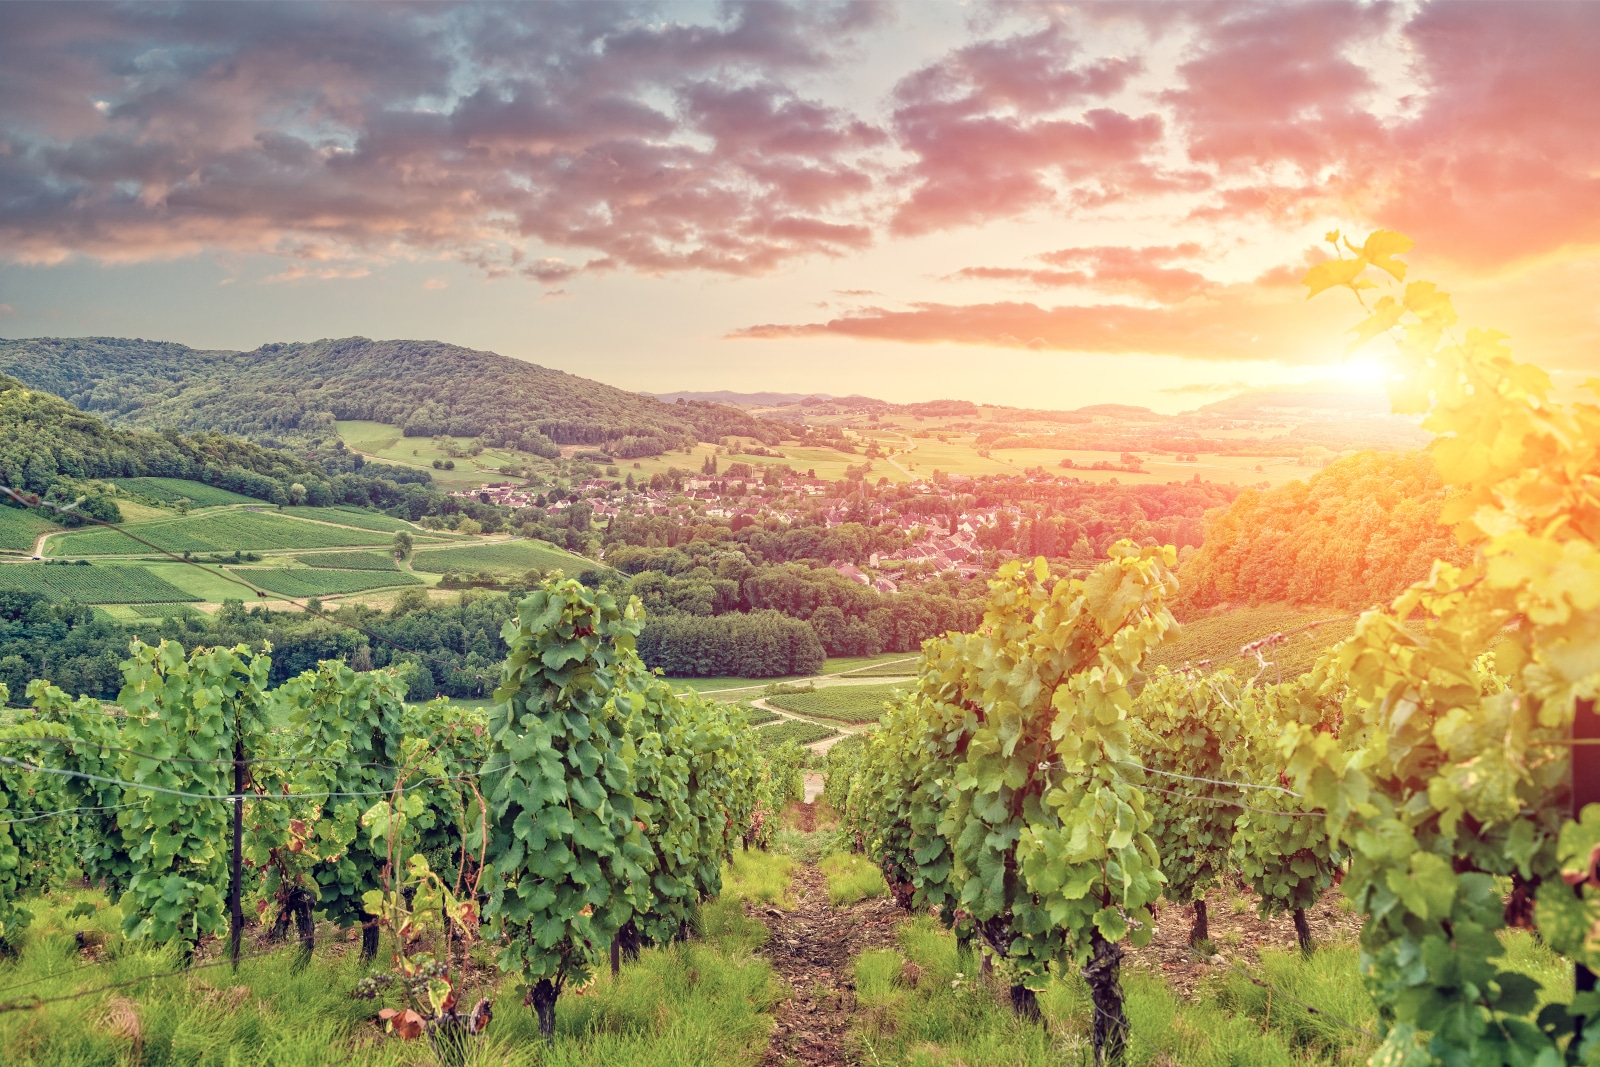 Where Does Pinot Gris Come From